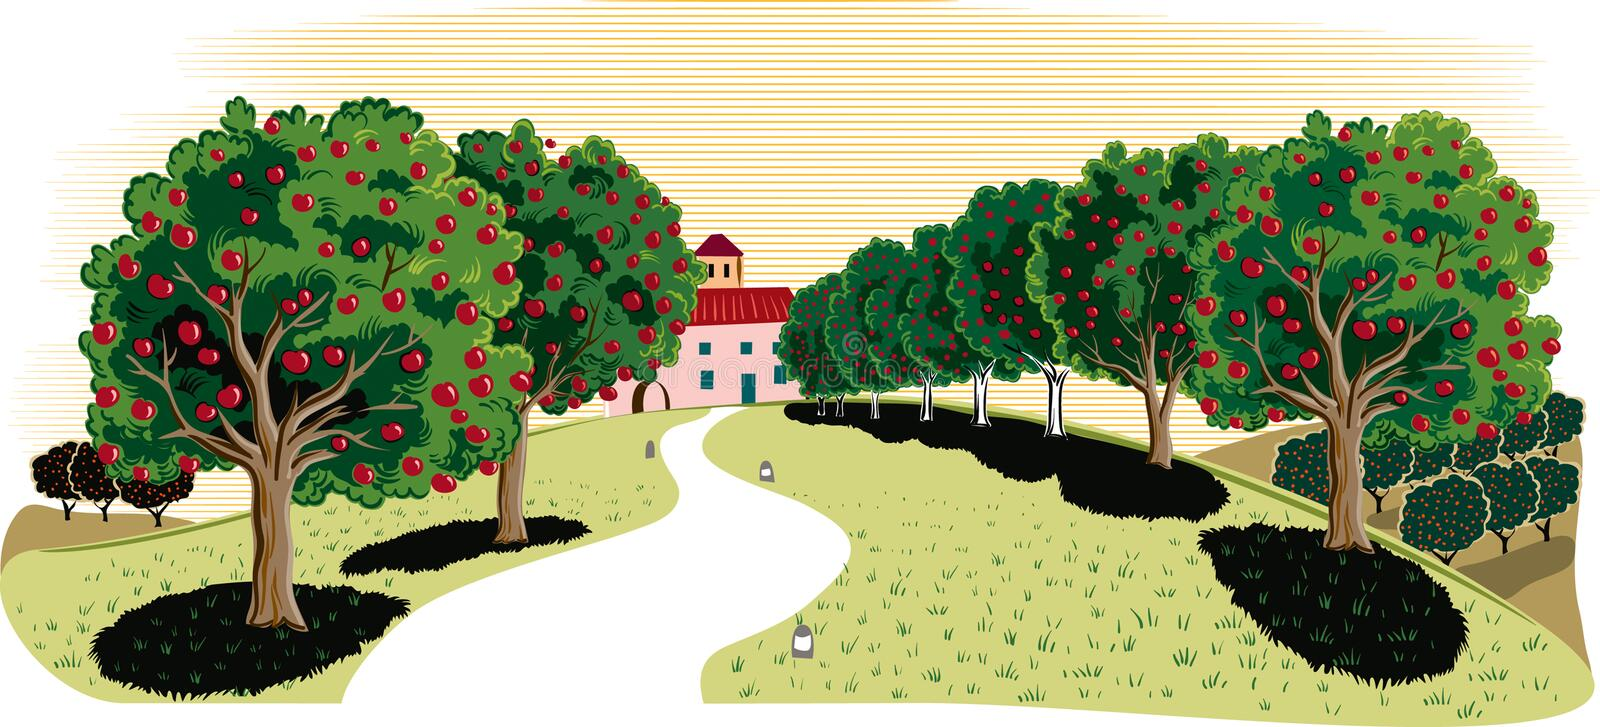 Apple trees in an orchard, stock illustration